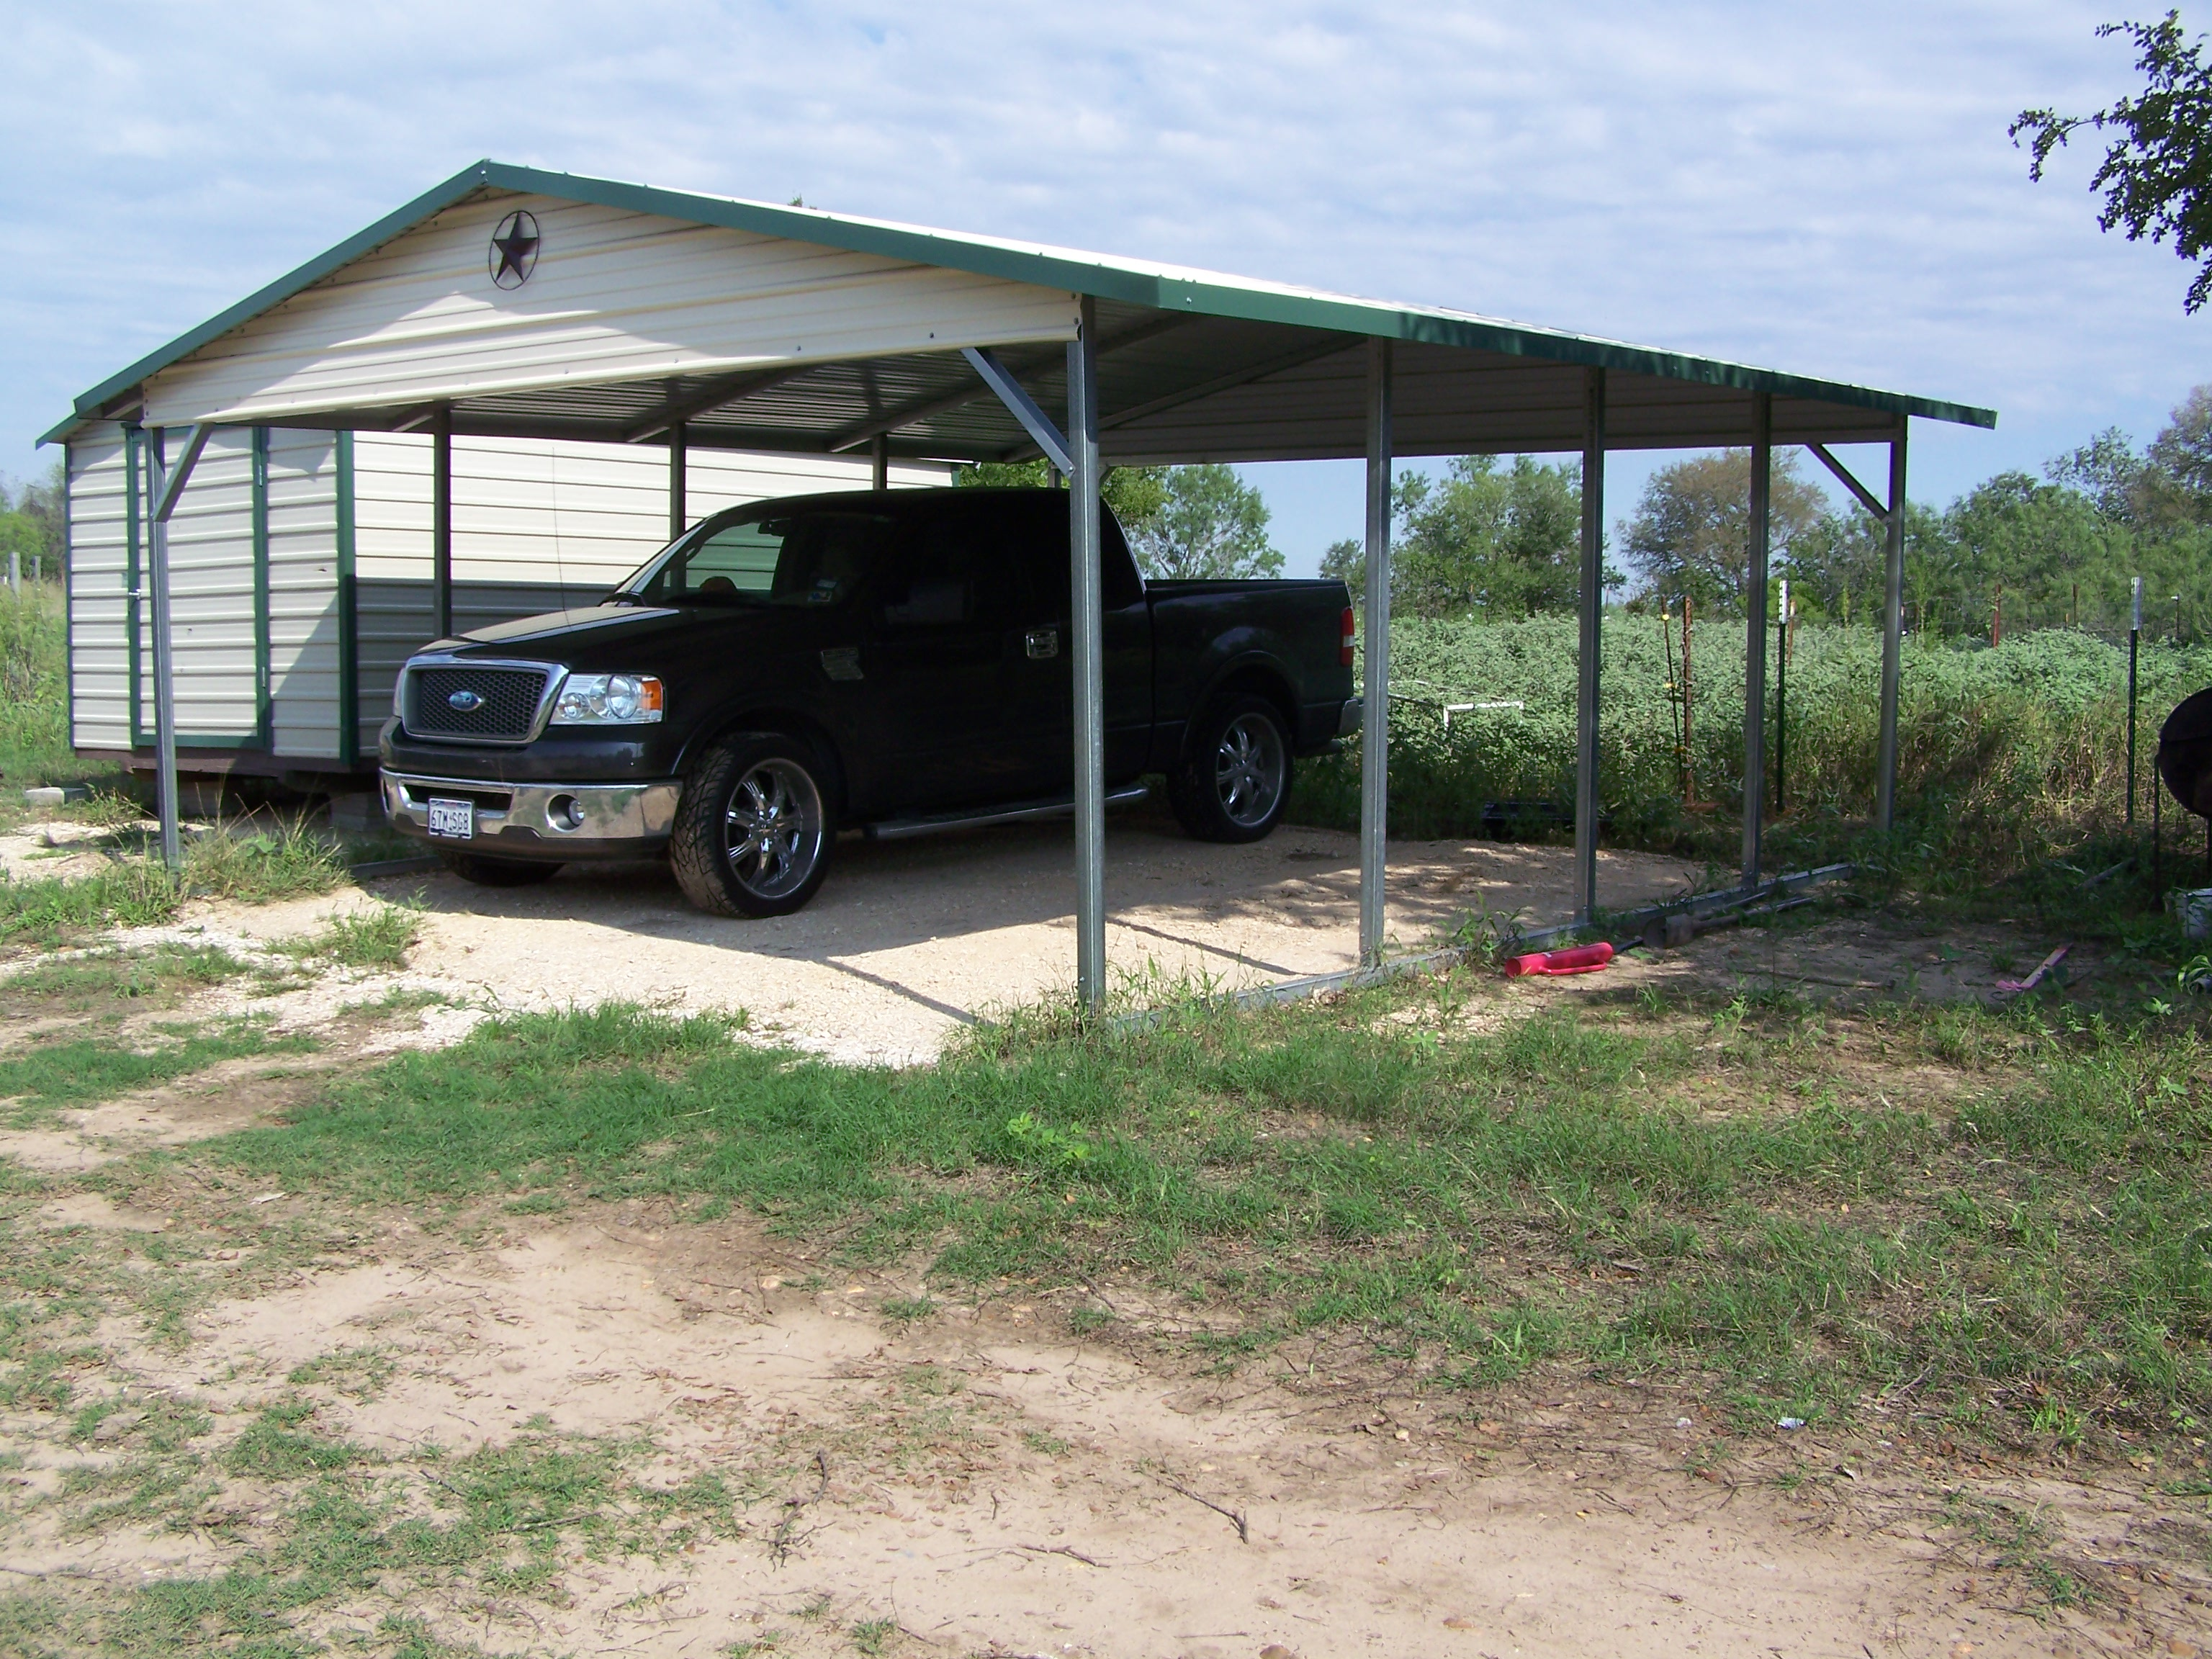 Carport Kits For Mobile Home : Mobile home metal roof awning carport la vernia